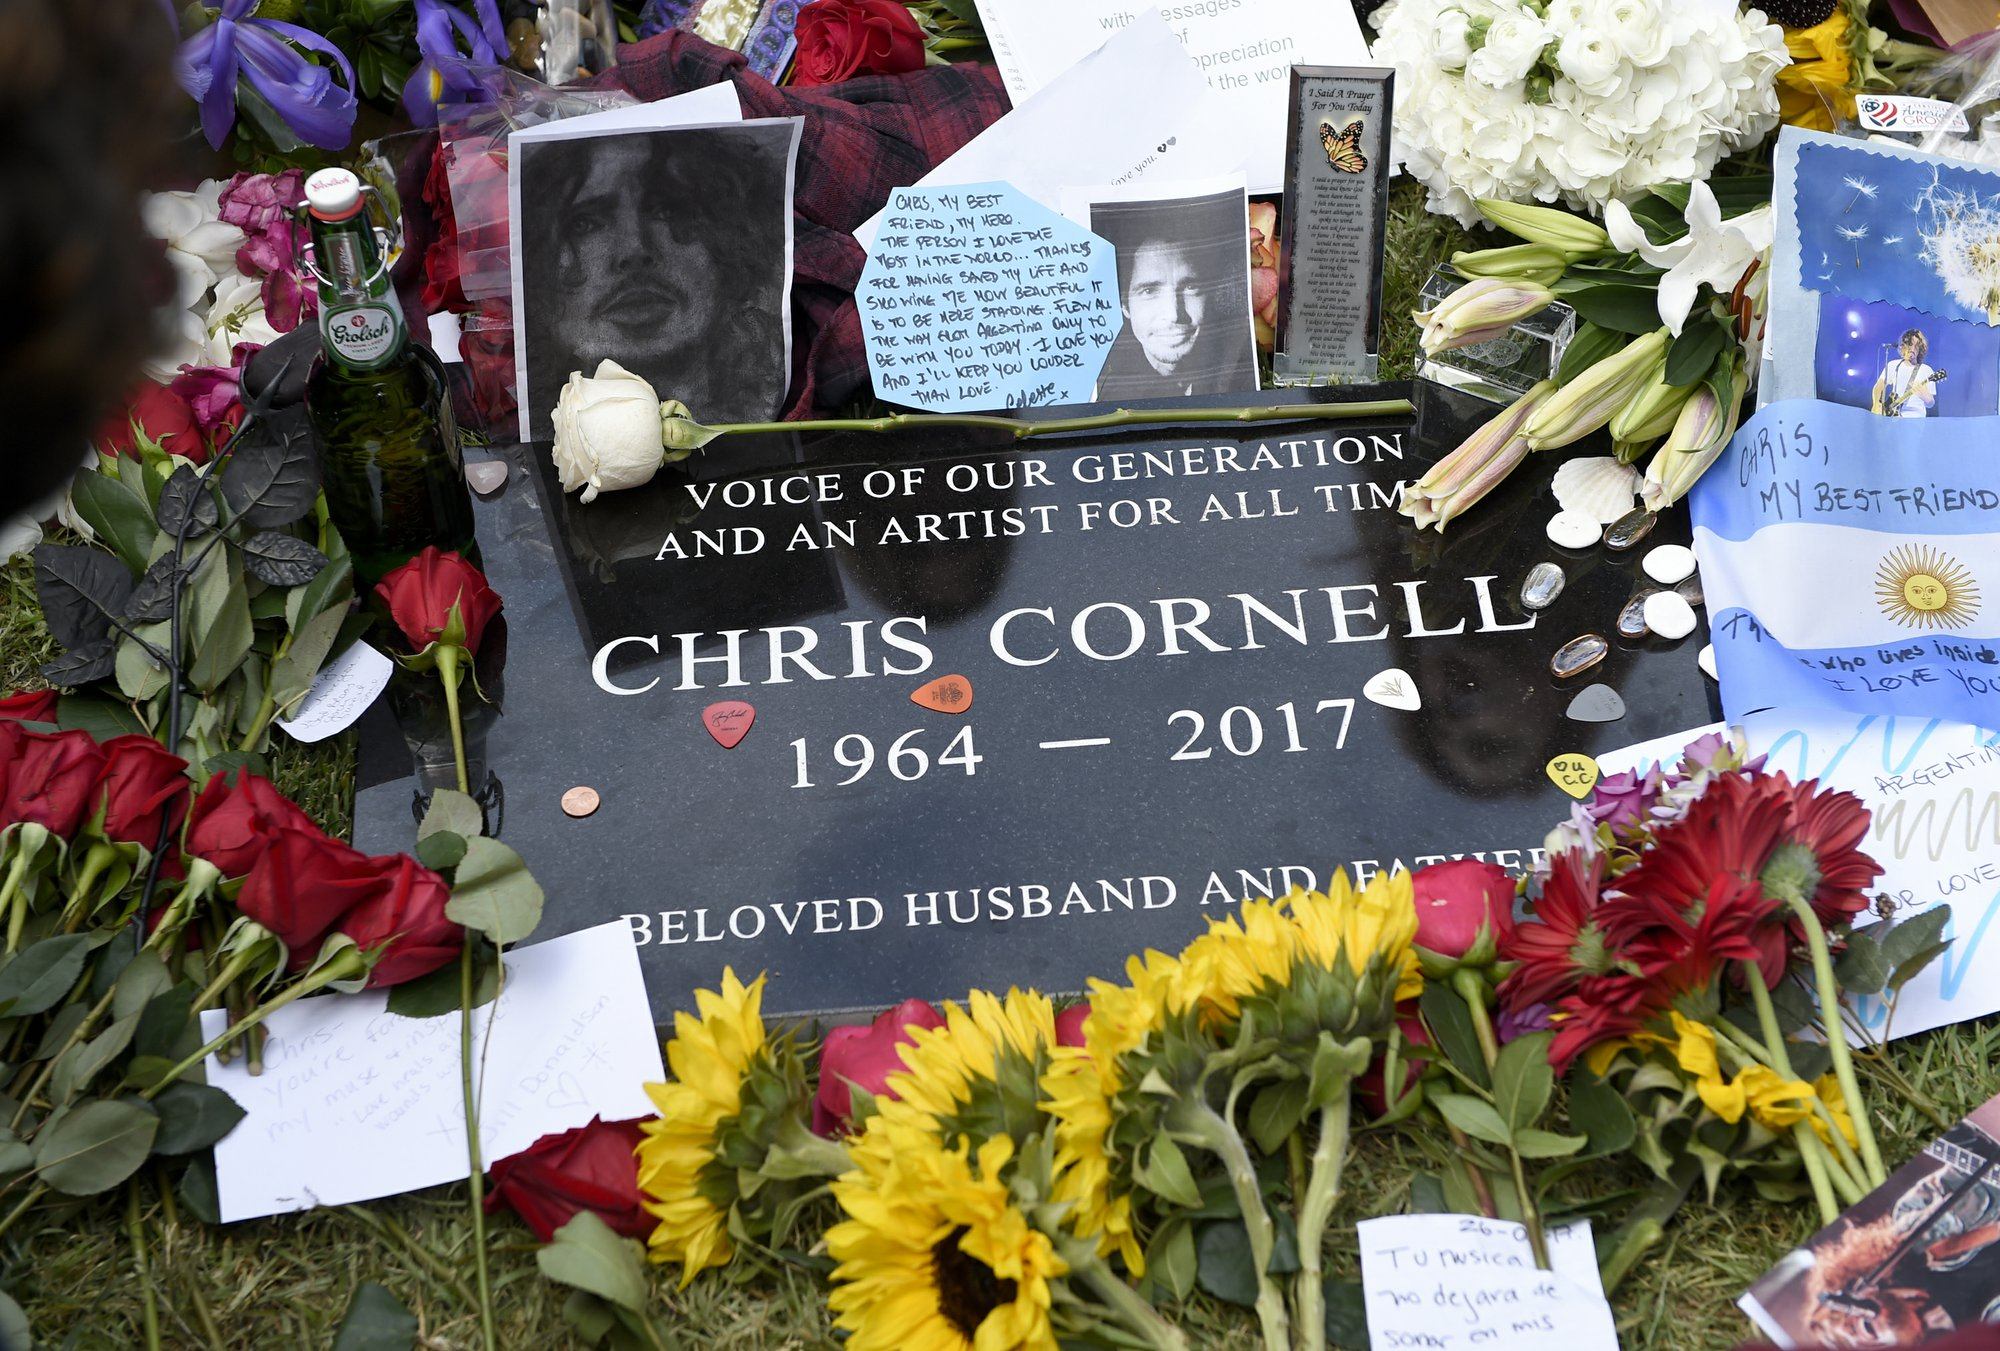 Rocker Chris Cornell Remembered As Voice Of Our Generation